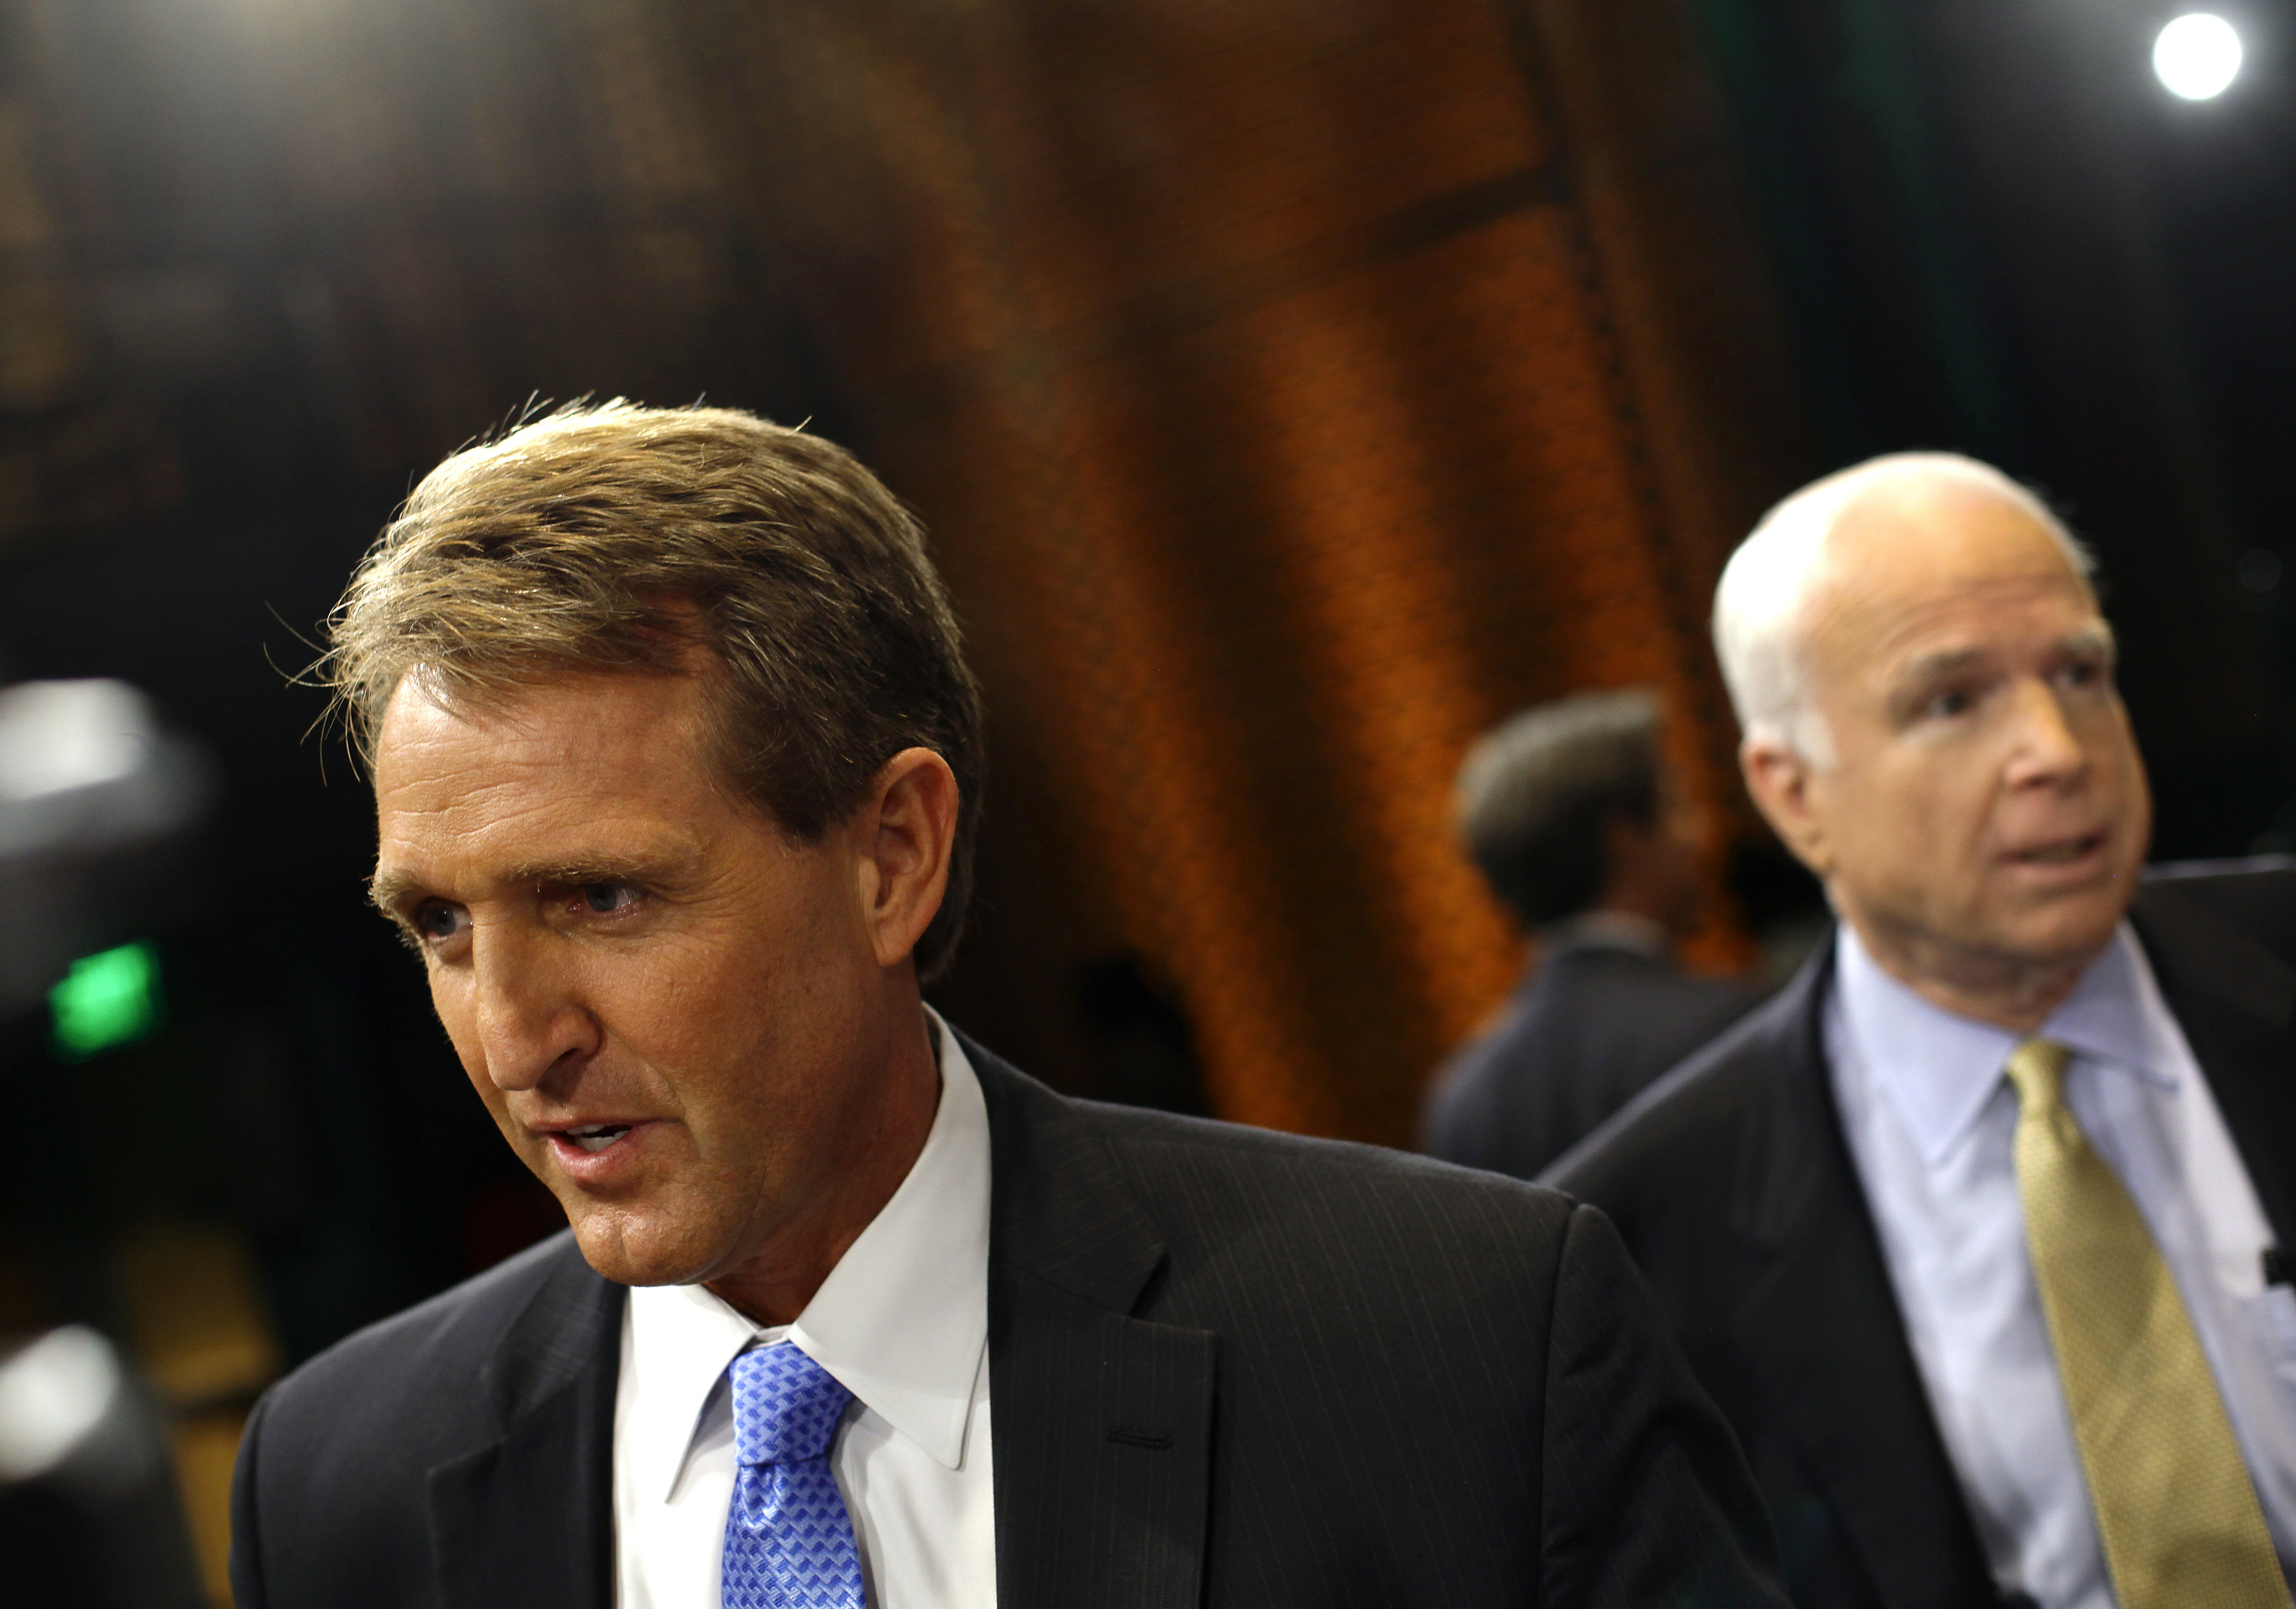 "U.S. Senator Jeff Flake (R-AZ) (L) and U.S. Senator John McCain (R-AZ) speak to reporters after attending a ""Conversation On Immigration"" during a town hall event in Mesa, Arizona August 27, 2013. McCain and Flake spoke about drugs entering the country illegally and businesses using E-Verify for employment eligibility when hiring workers. REUTERS/Joshua Lott (UNITED STATES - Tags: SOCIETY IMMIGRATION POLITICS) - RTX12Y6O"